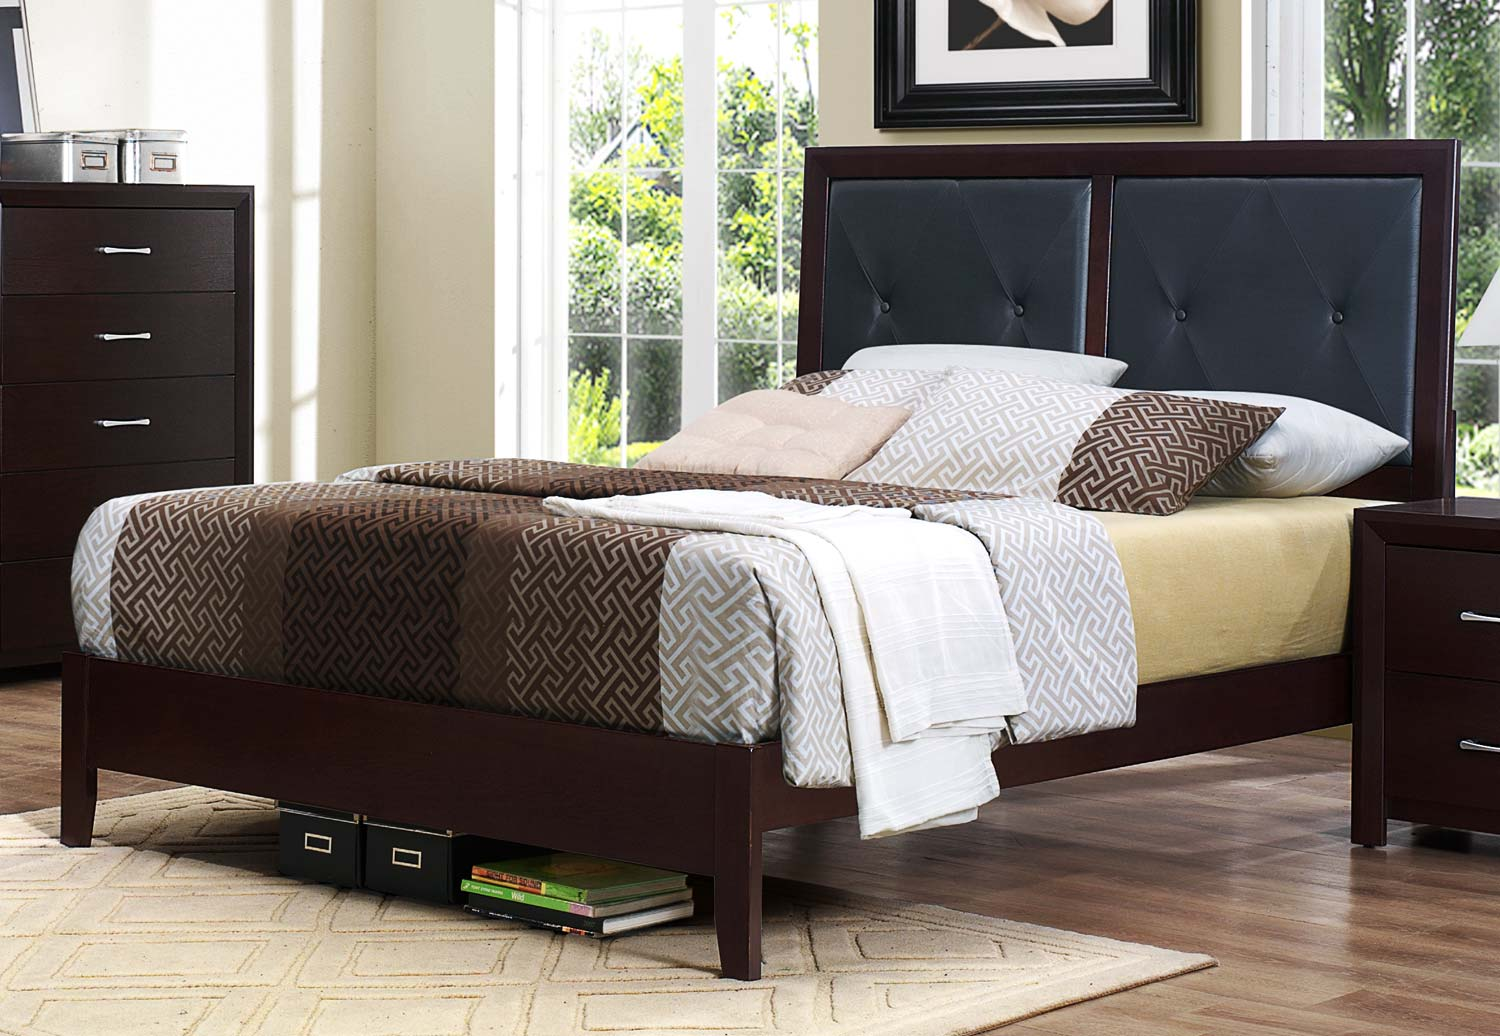 Homelegance Edina Bed - Brown Espresso